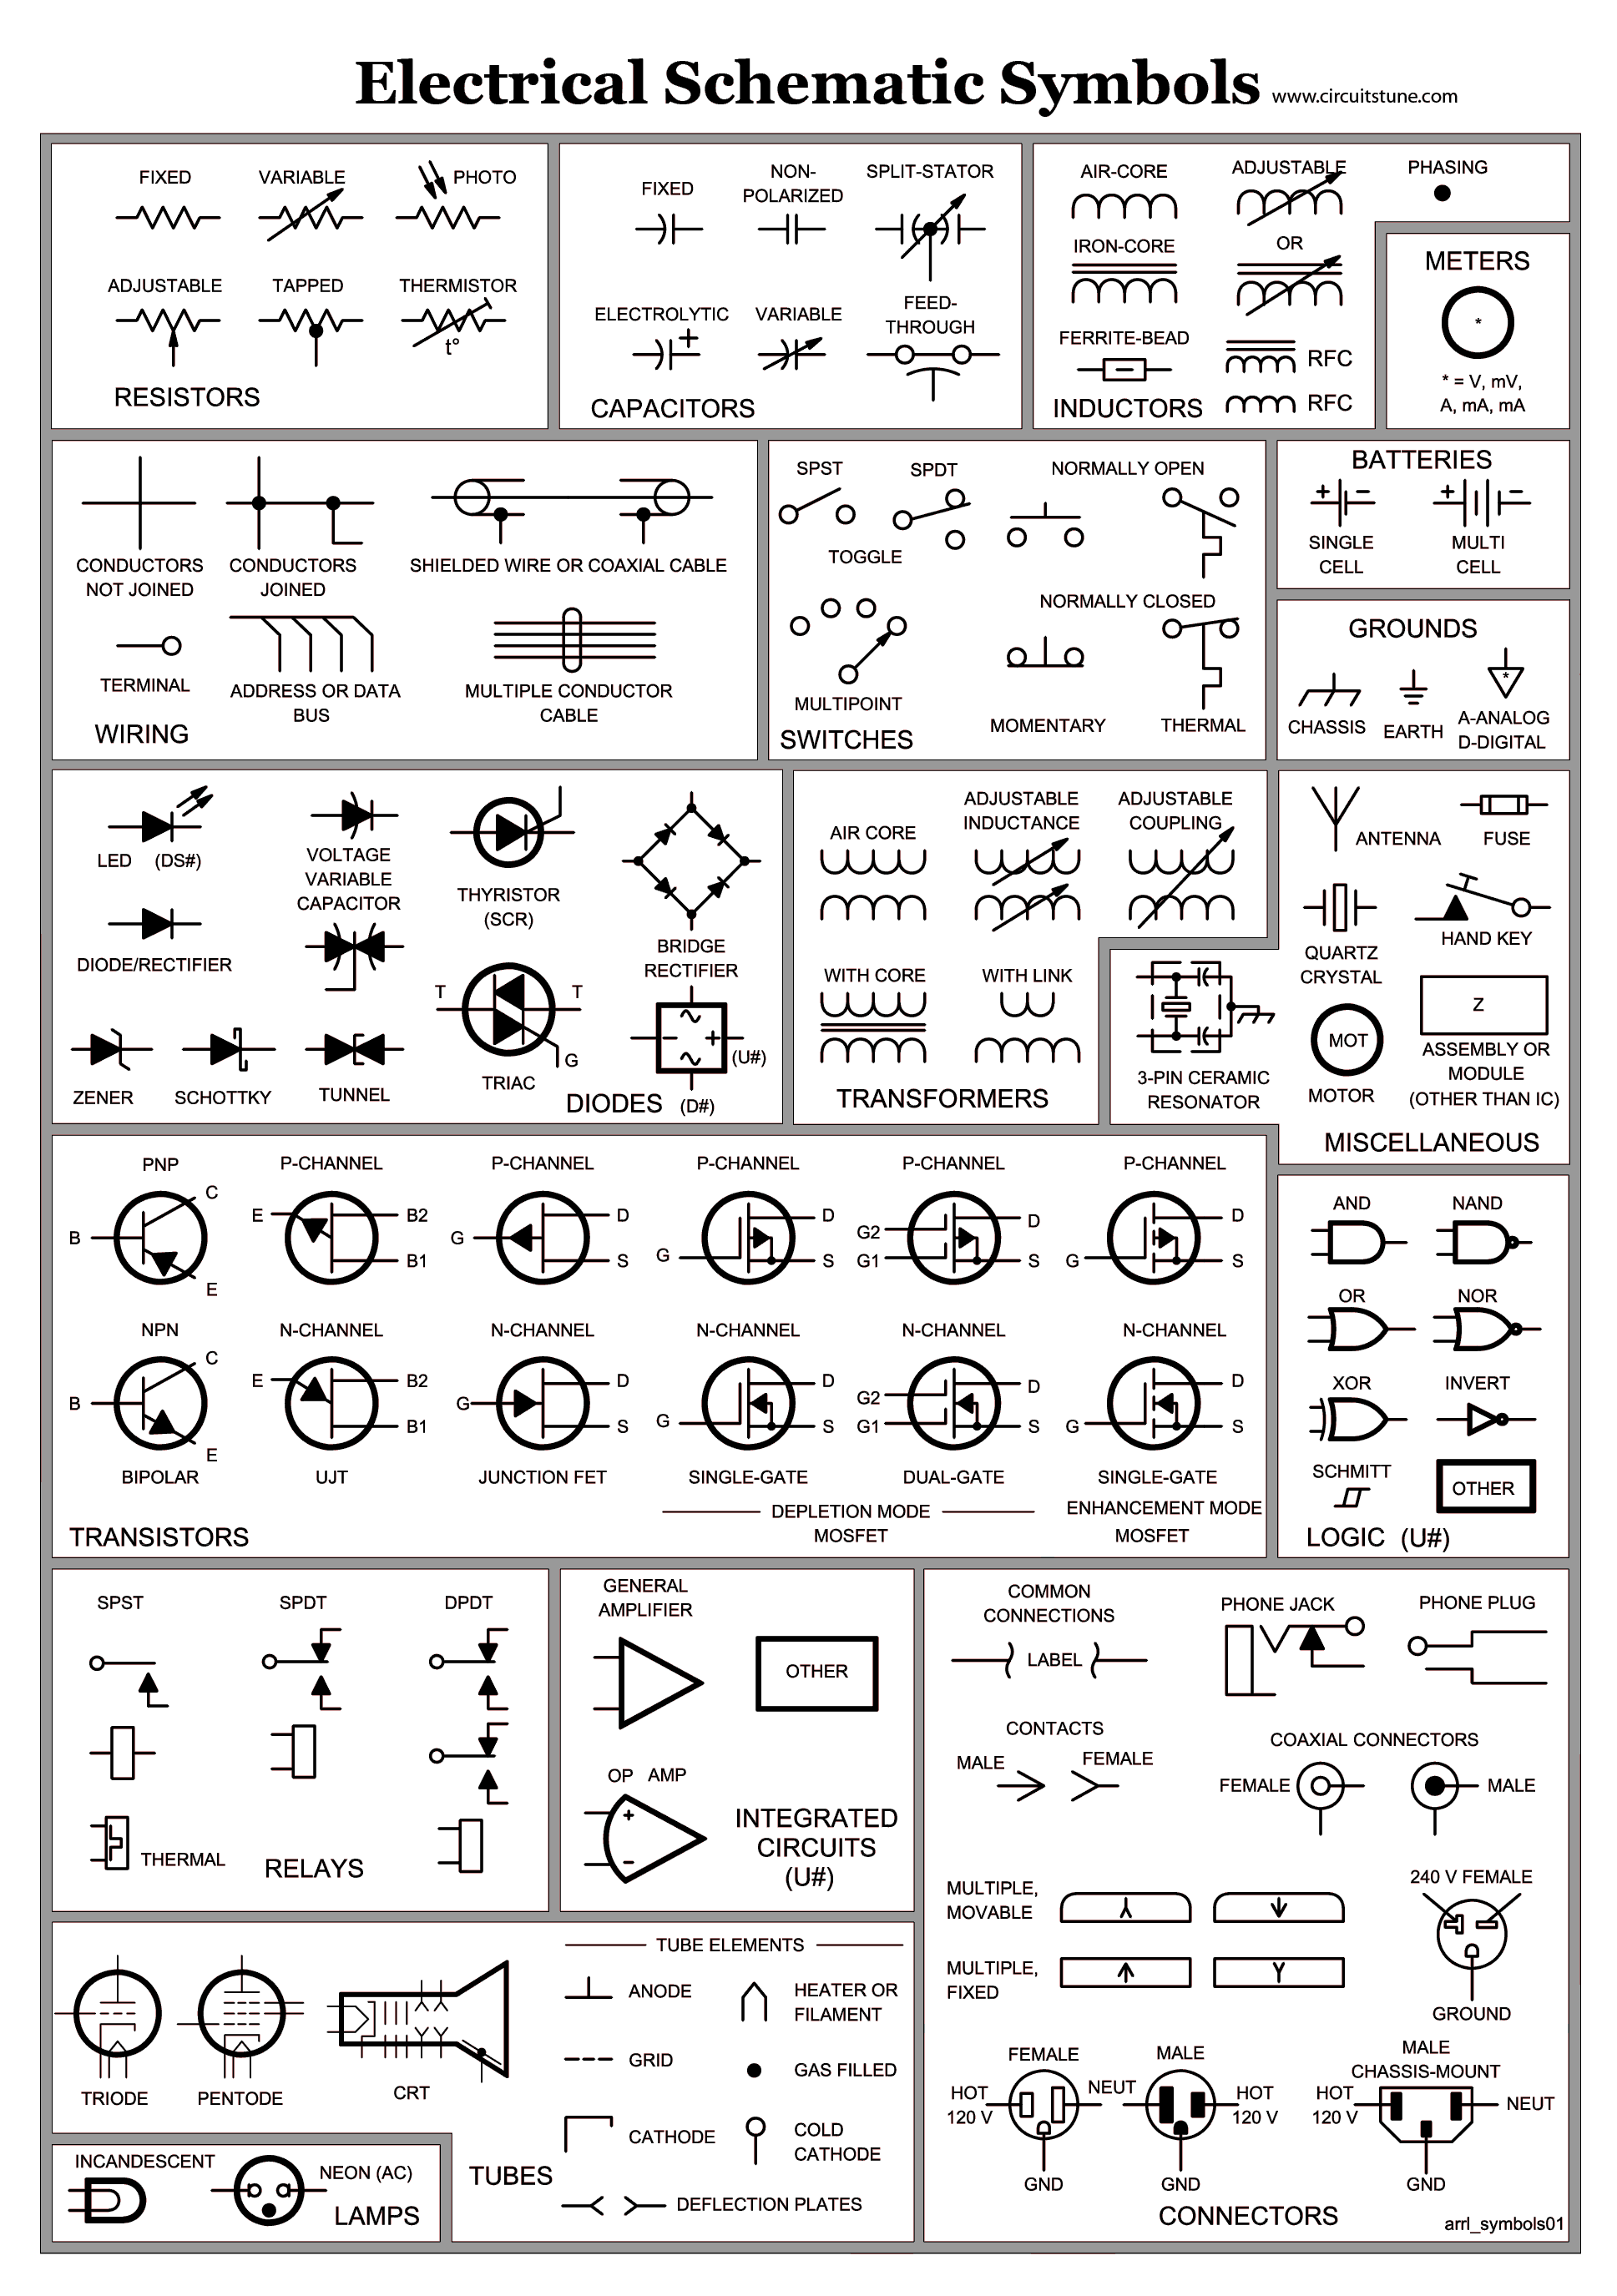 circuit schematic symbols bmet wiki fandom powered by wikia rh bmet wikia com electrical wiring symbols and meanings electrical wiring symbols standard